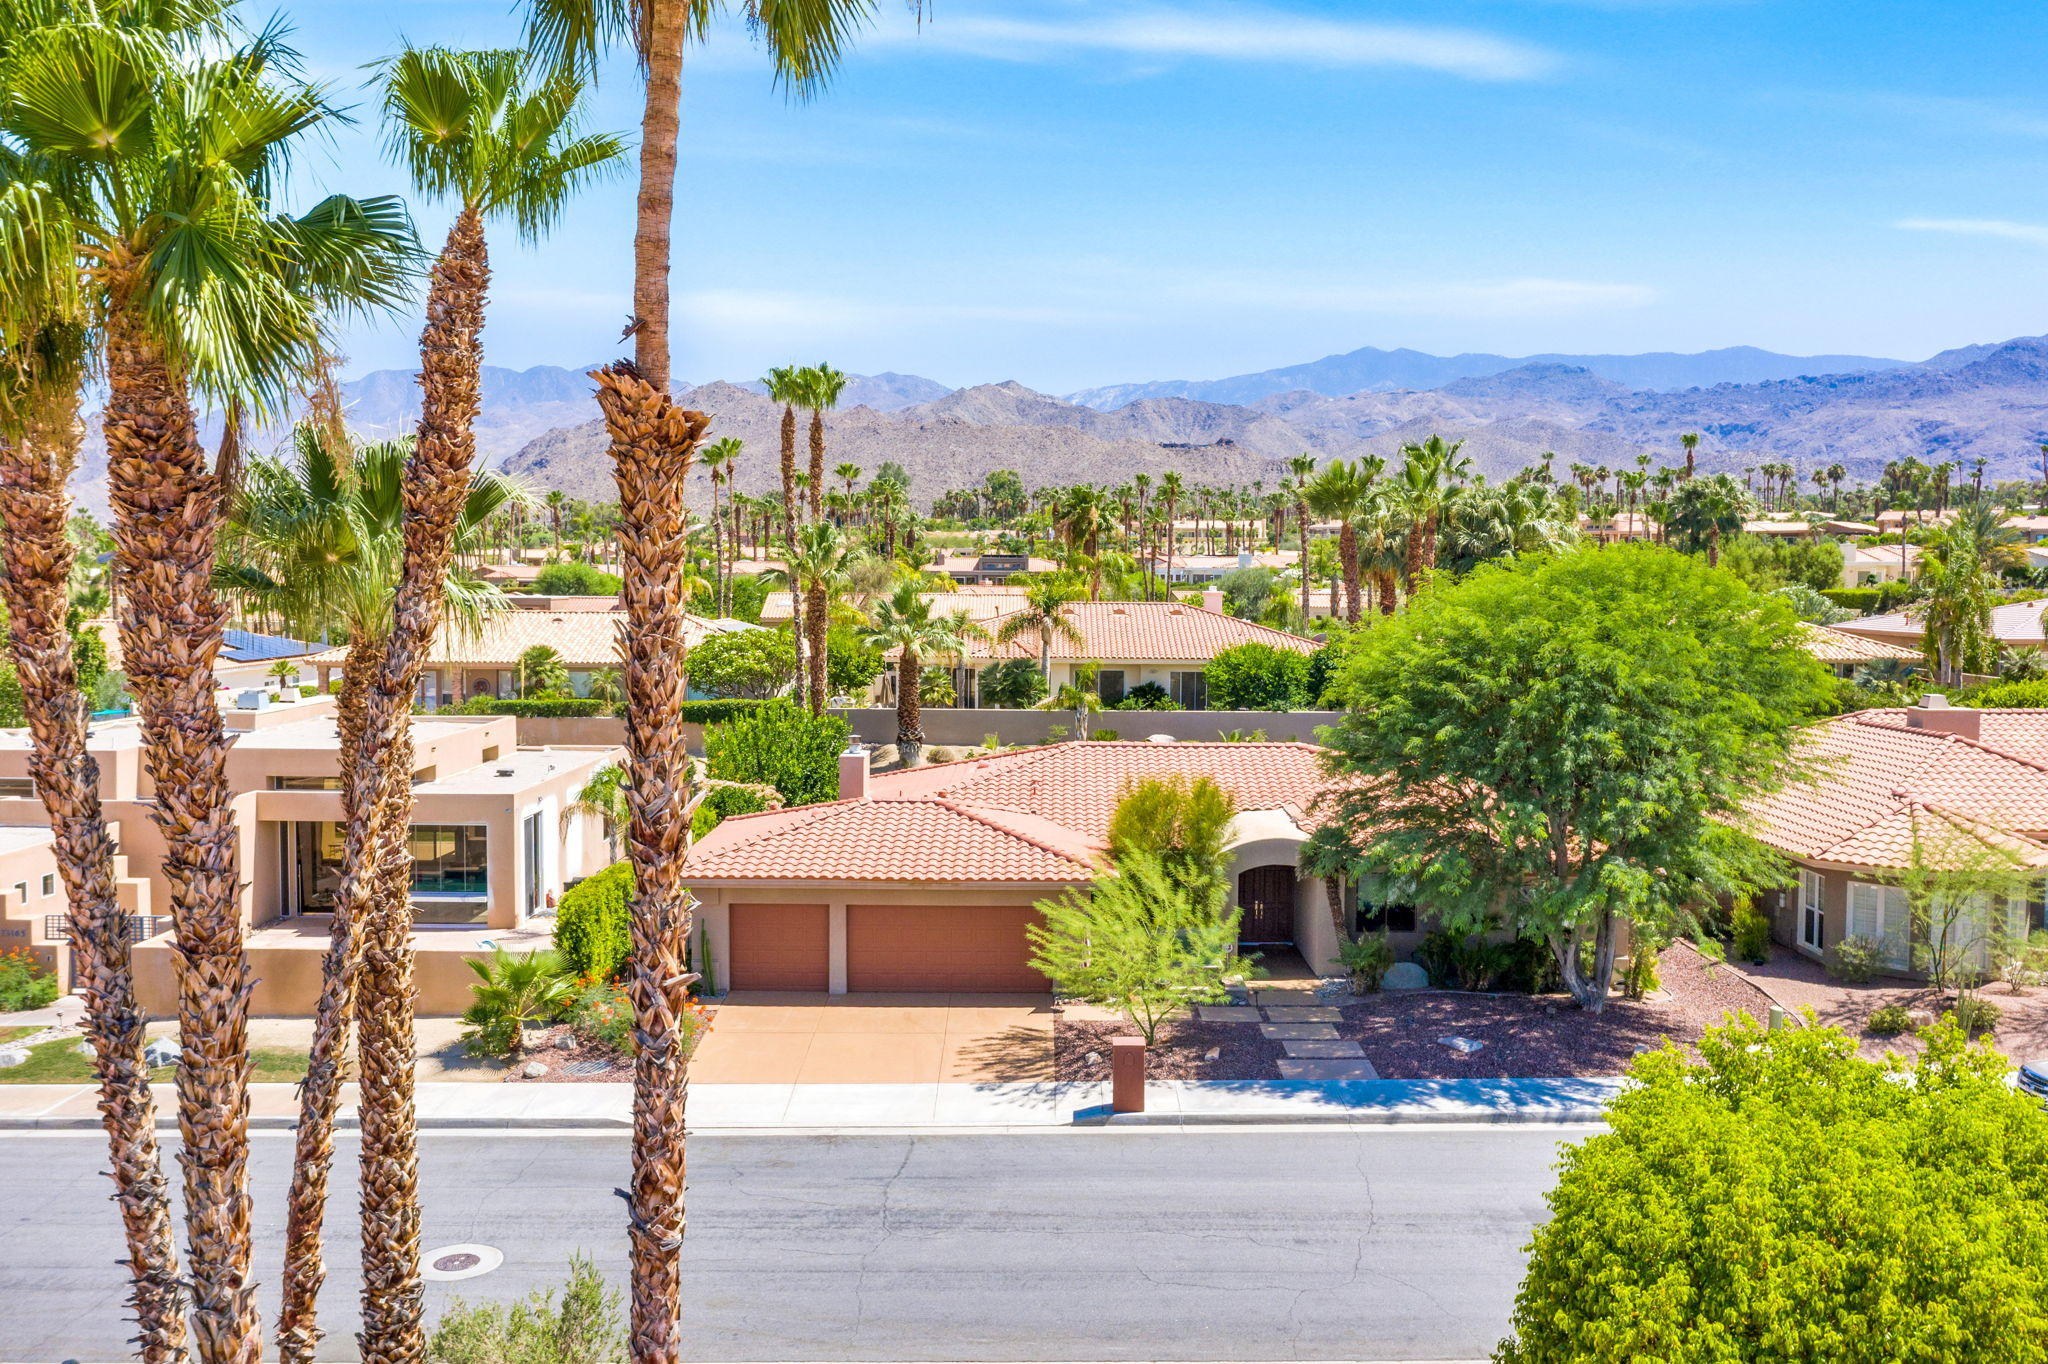 73149 Bel Air Road, Palm Desert, California 92260, 4 Bedrooms Bedrooms, ,3 BathroomsBathrooms,Residential,For Sale,73149 Bel Air Road,219045423